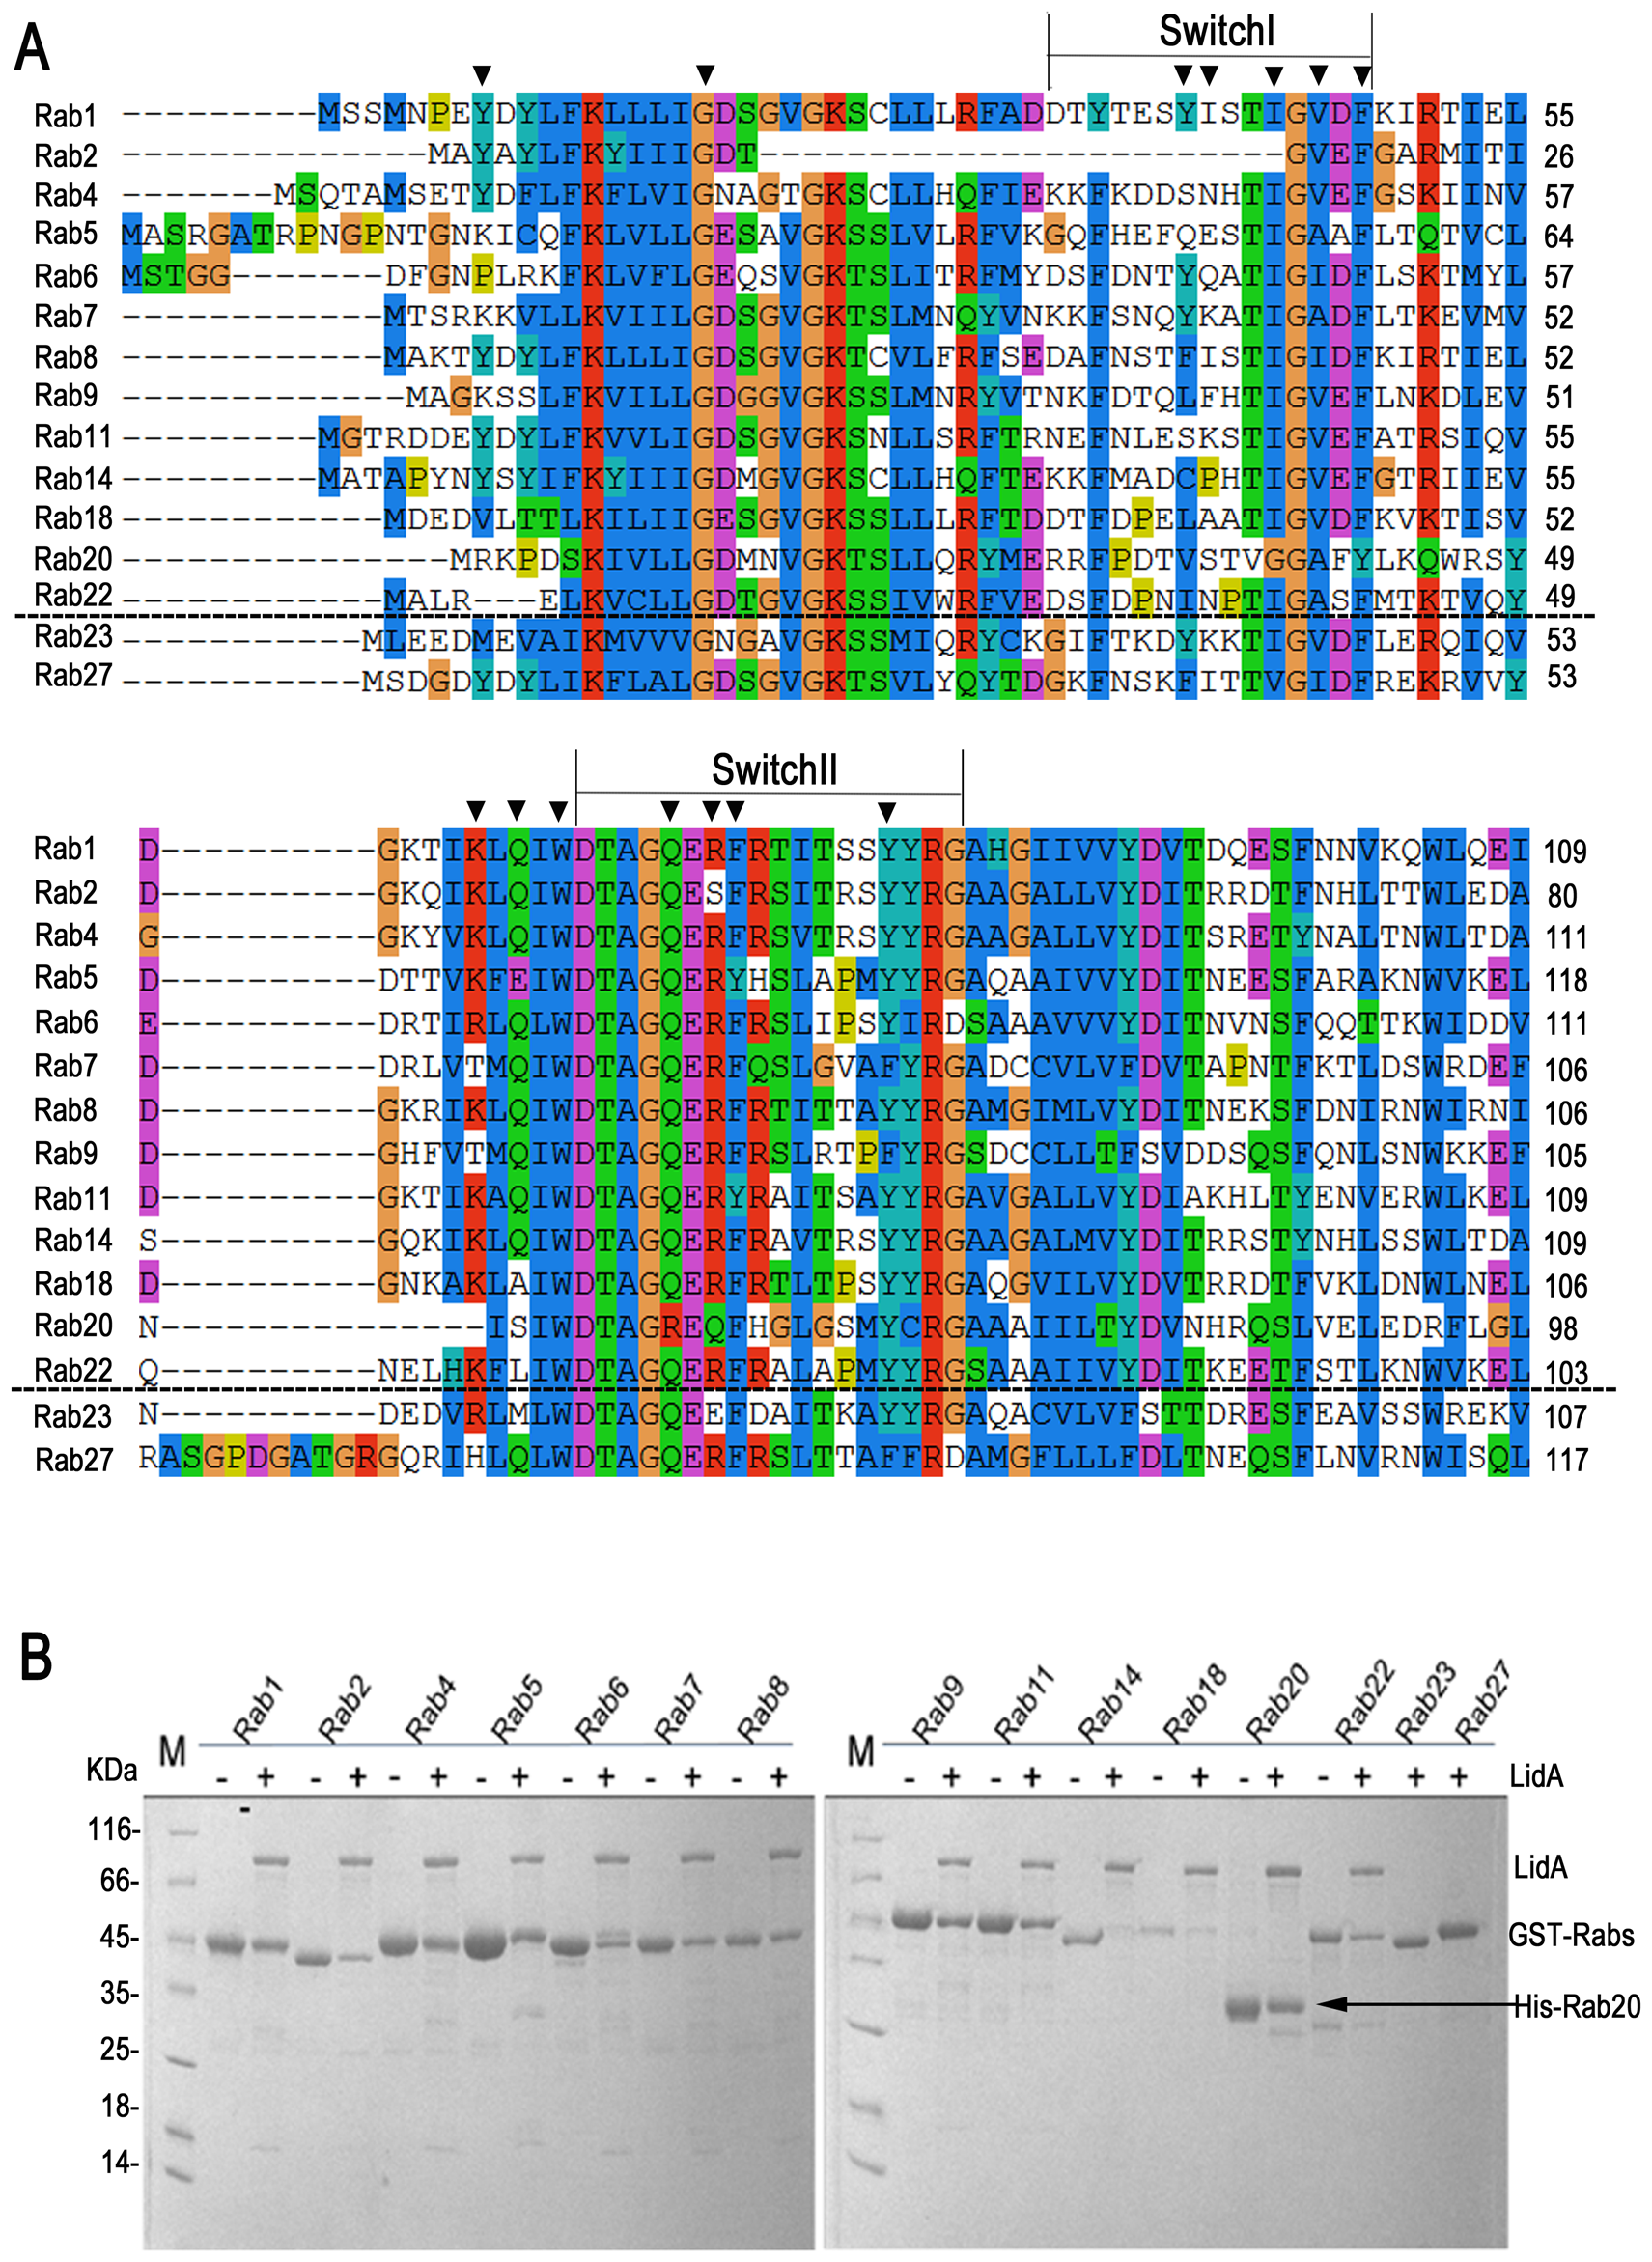 13 kinds of Rab GTPase family members could be recognized by LidA <i>in vitro</i>.